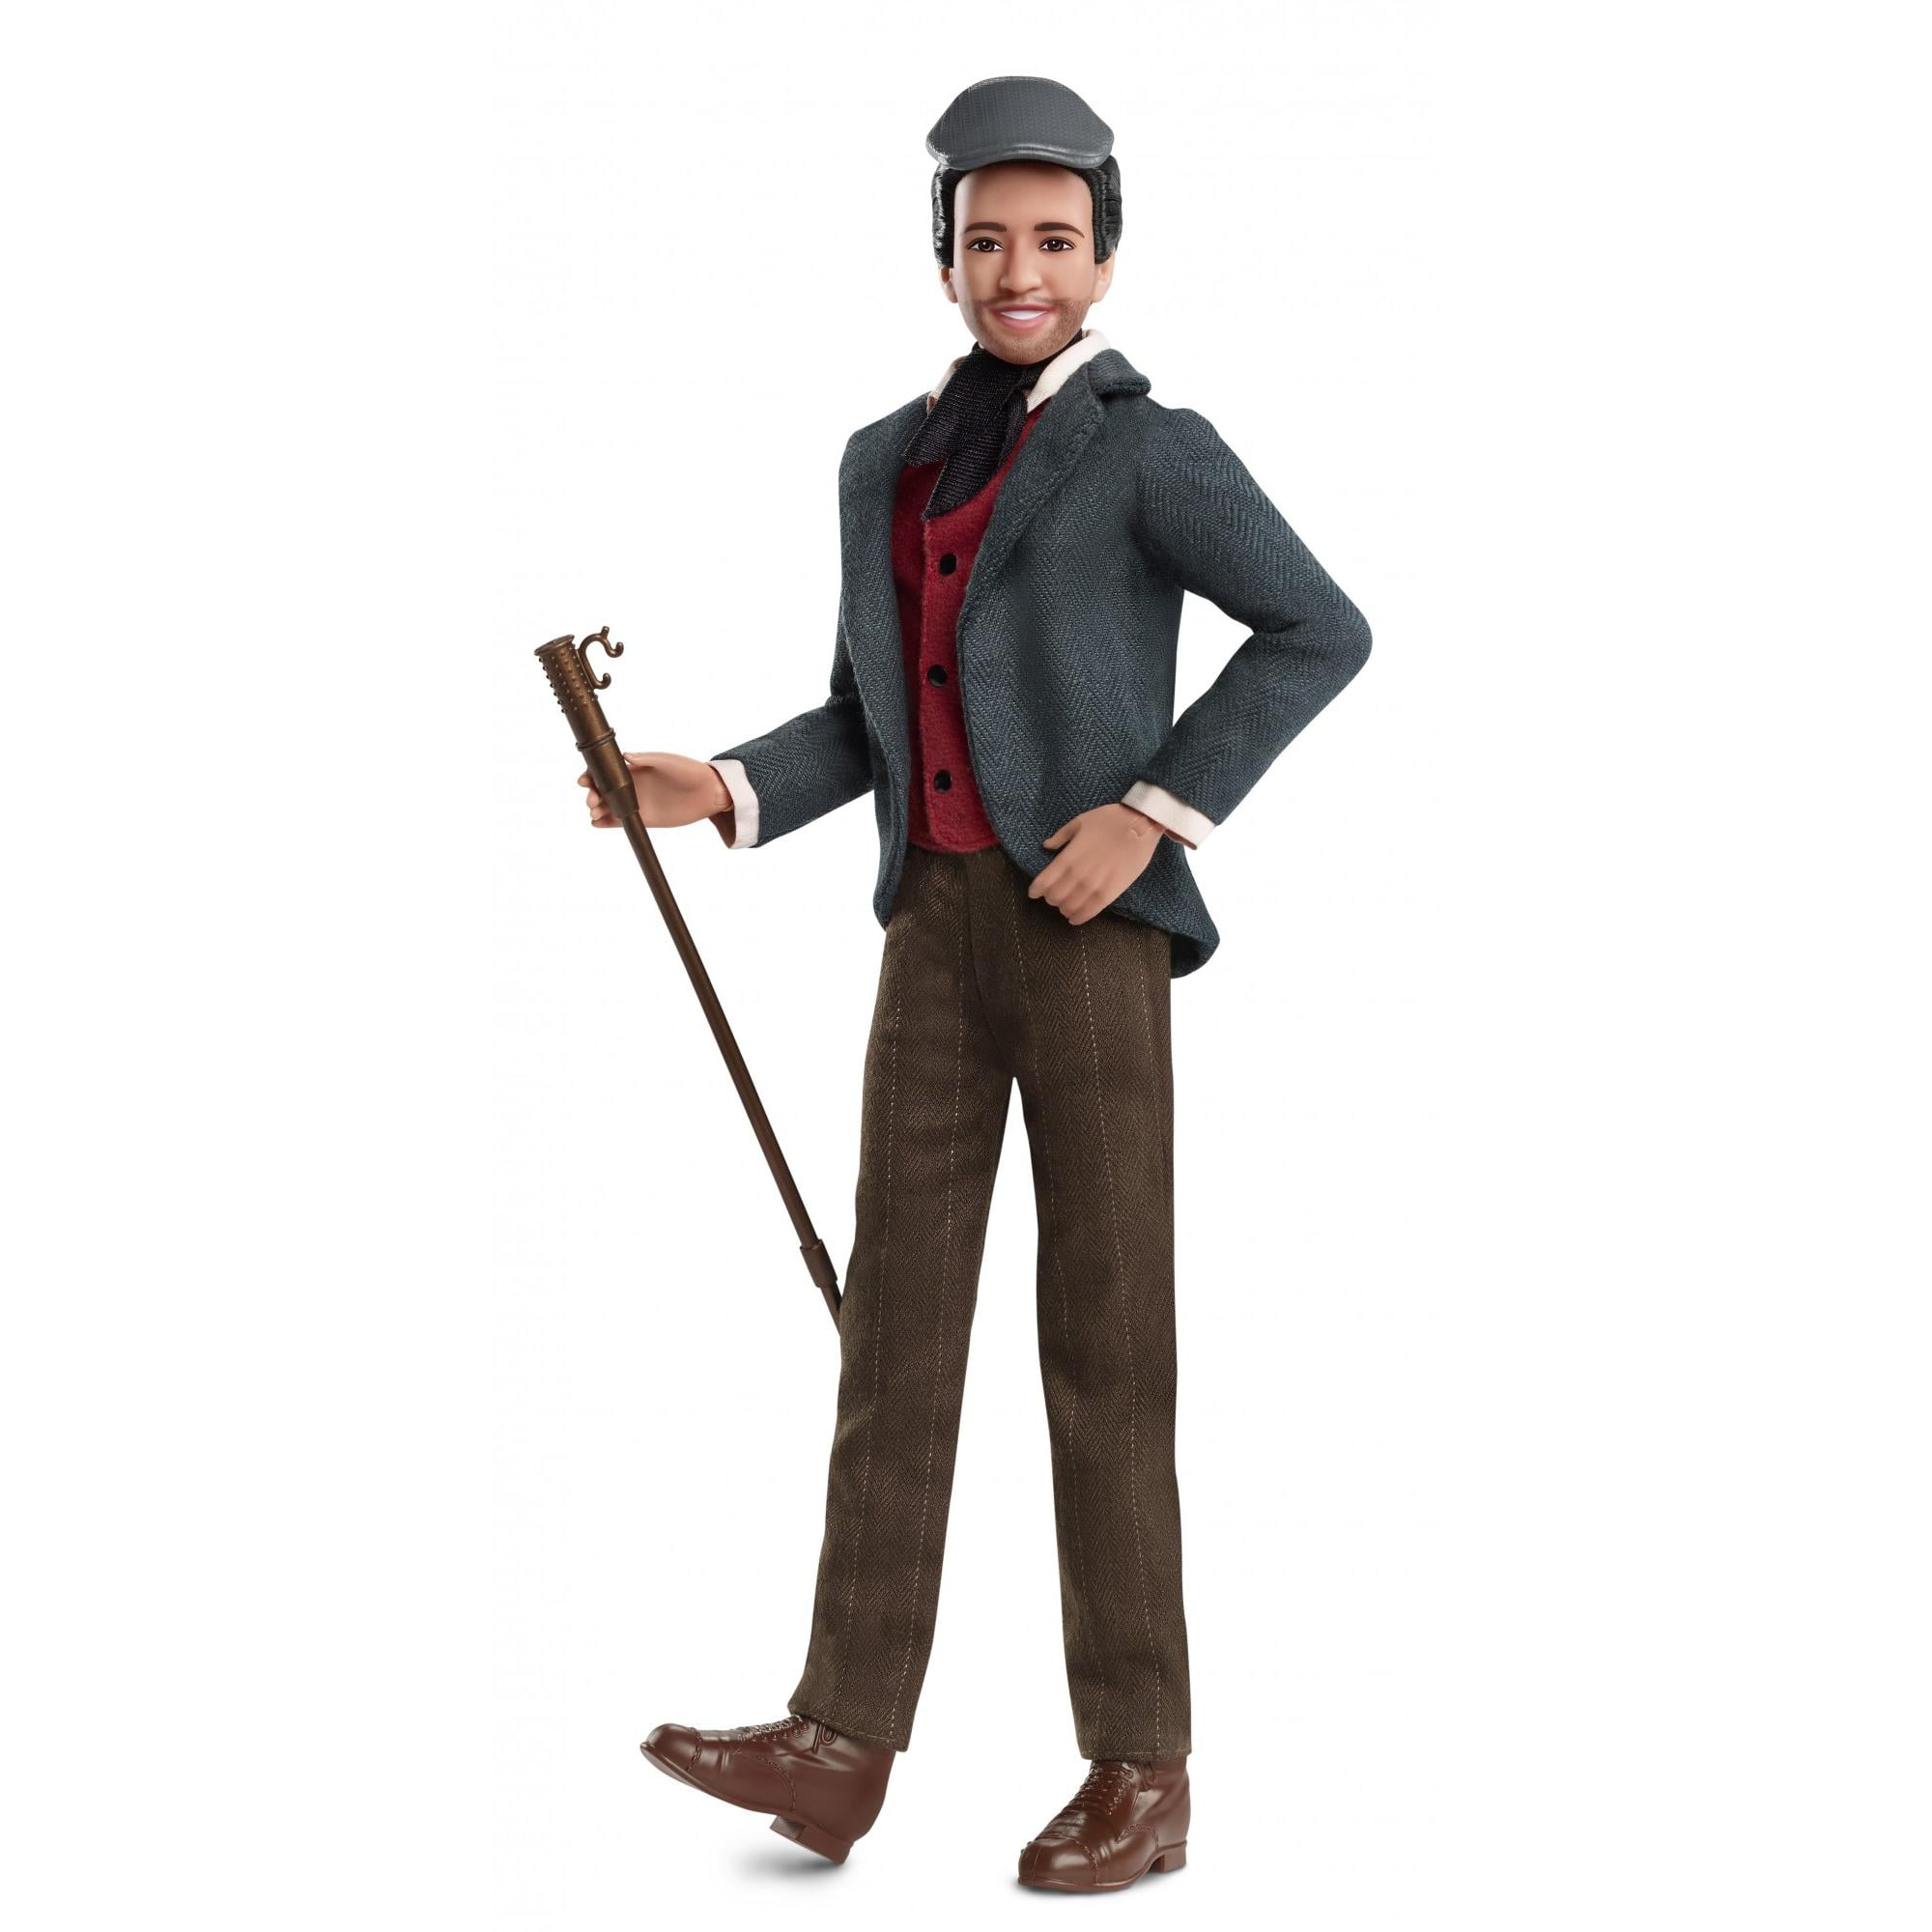 Disney Mary Poppins Returns Jack the Lamplighter Barbie Doll by Mattel